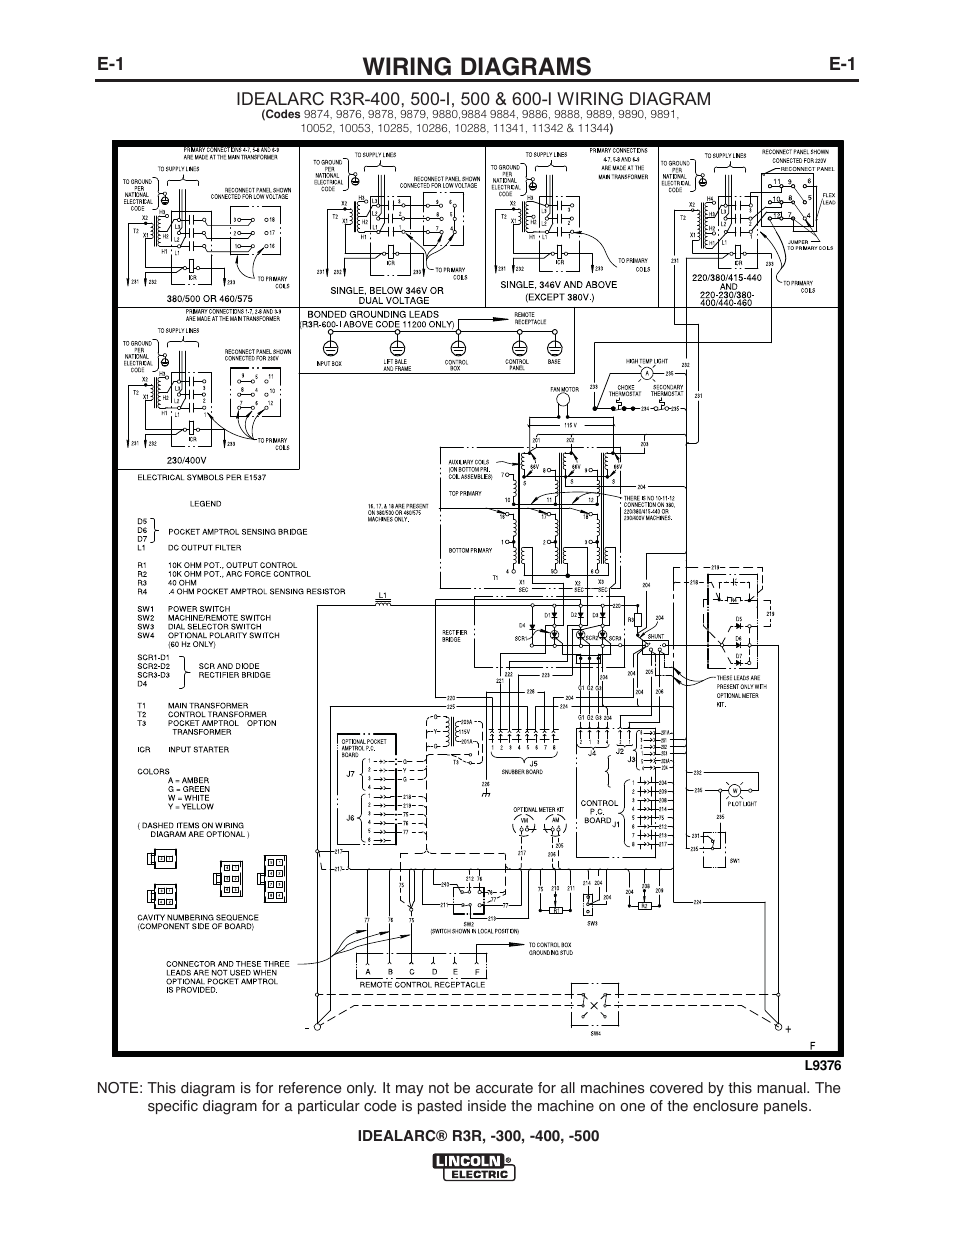 Delco Model 21023038 Wiring Diagram